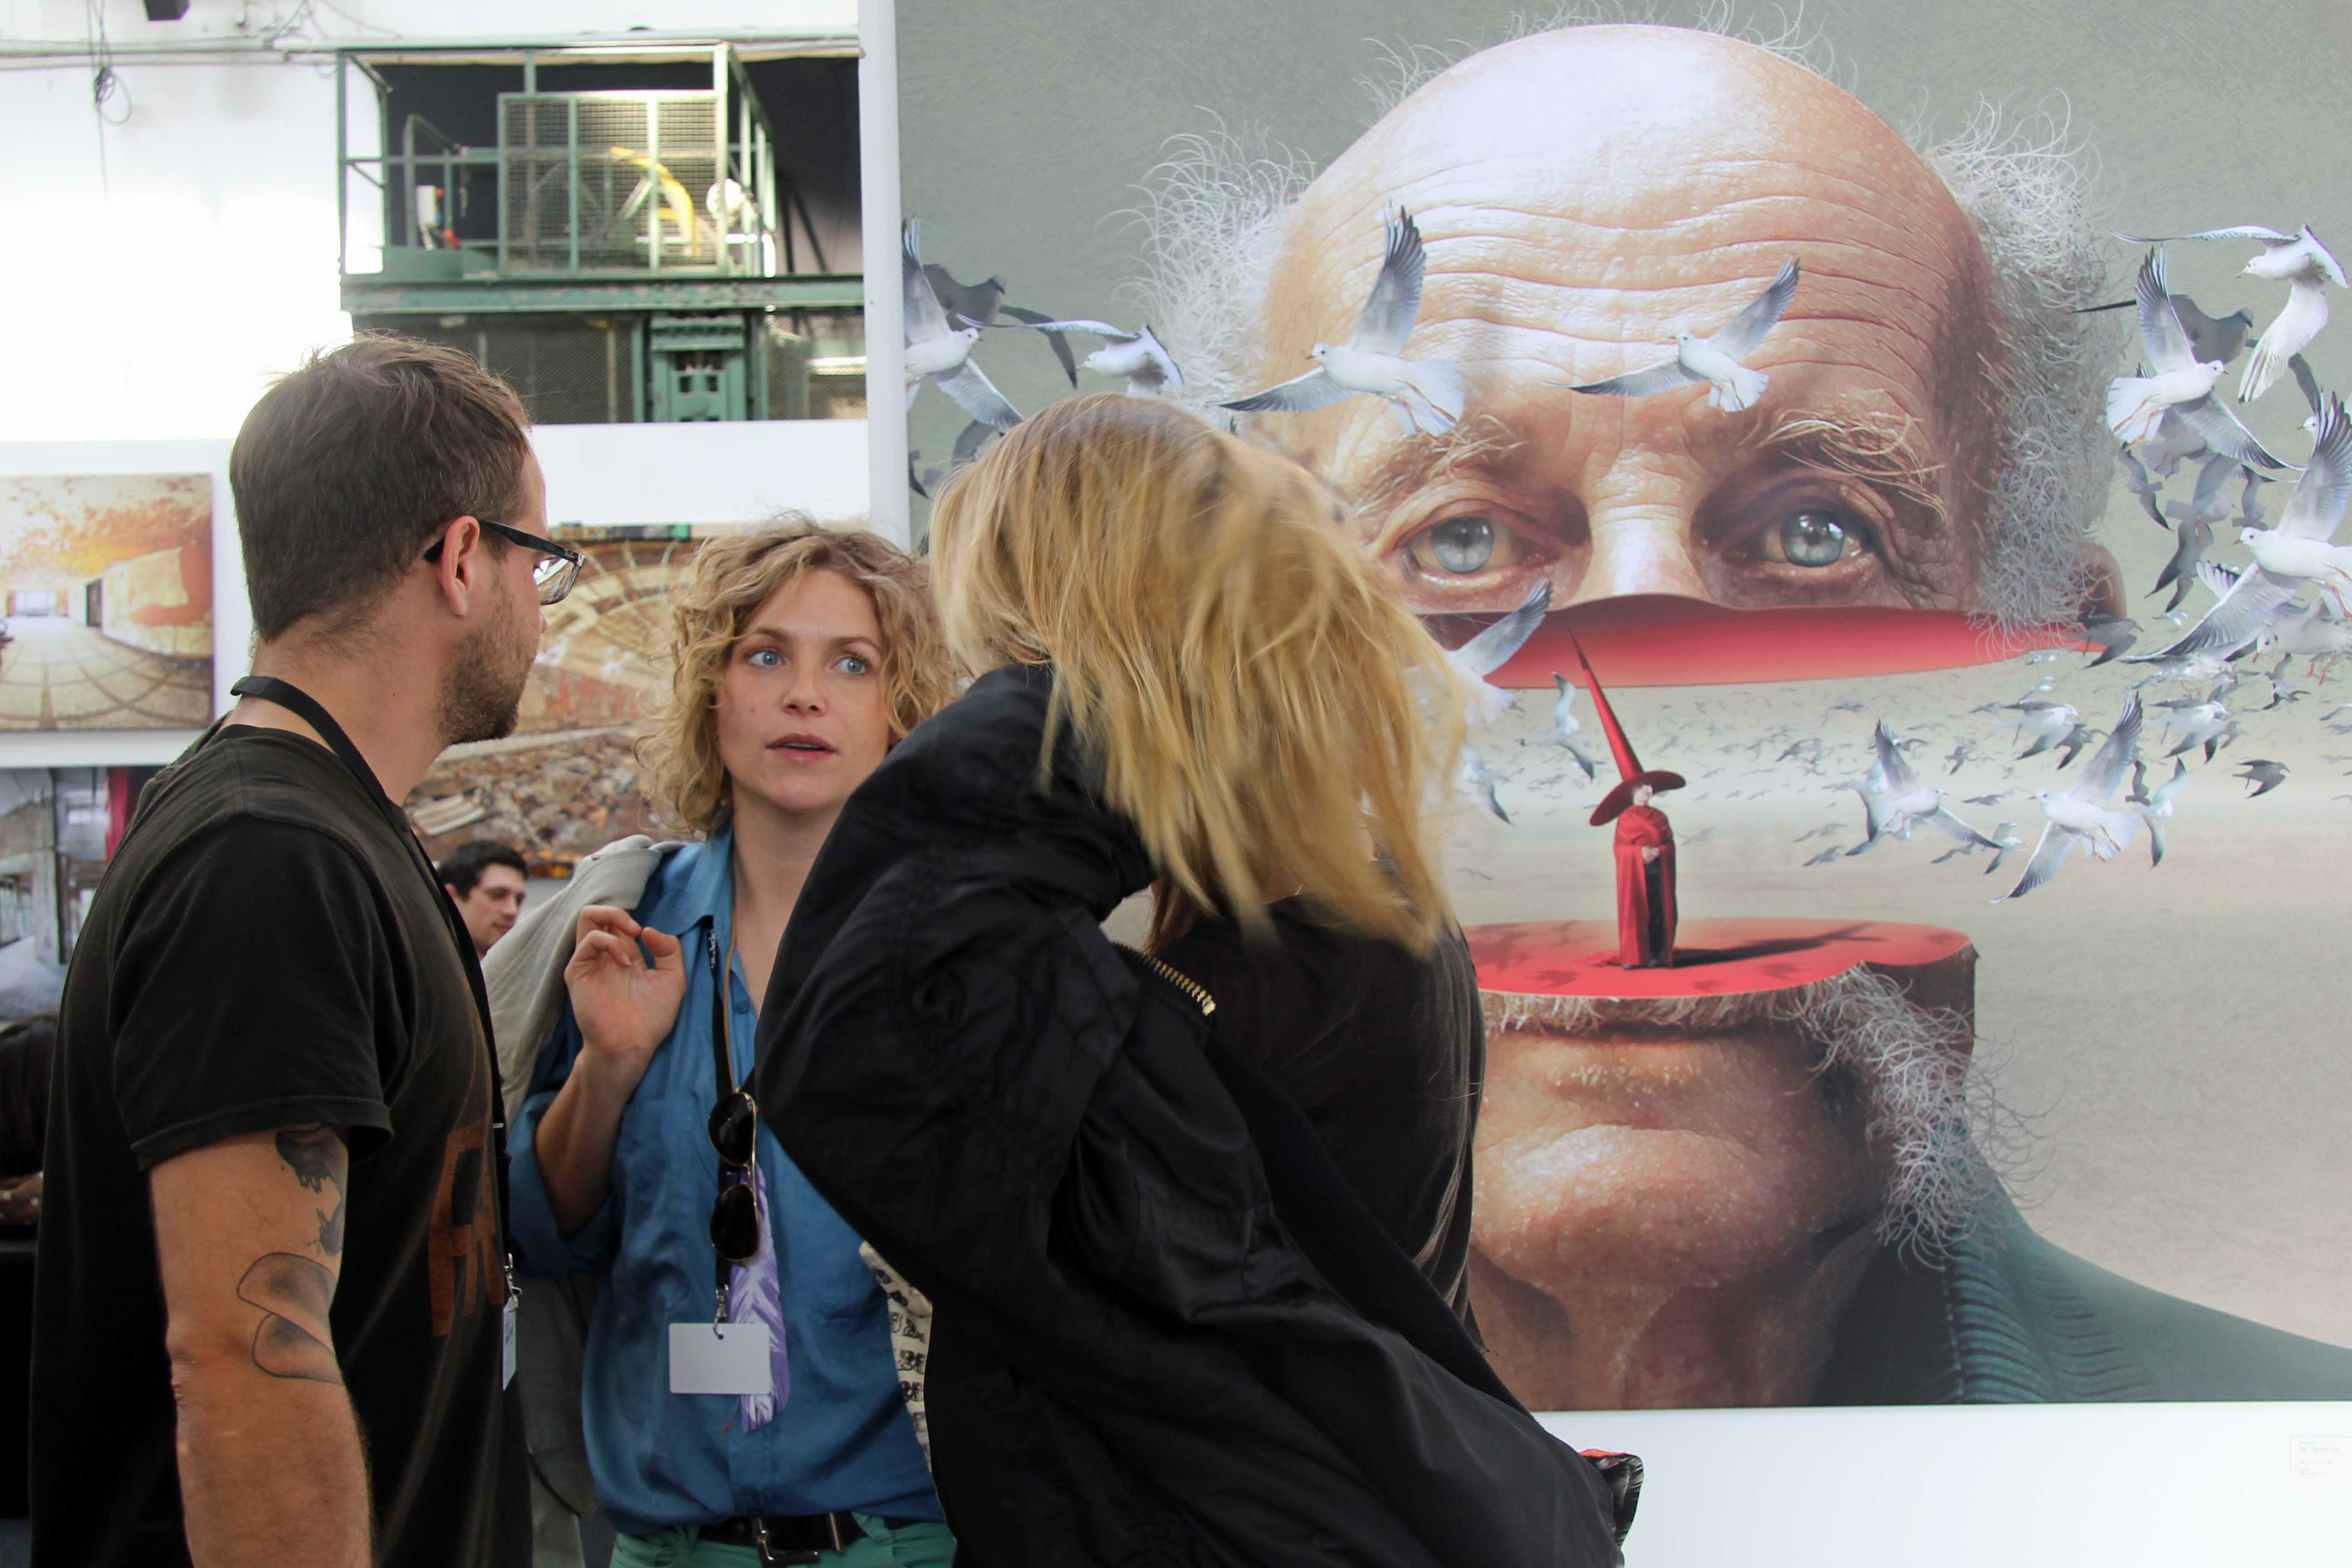 A group of visitors discuss the artwork at Stroke Urban Art Fair 2012 in Berlin